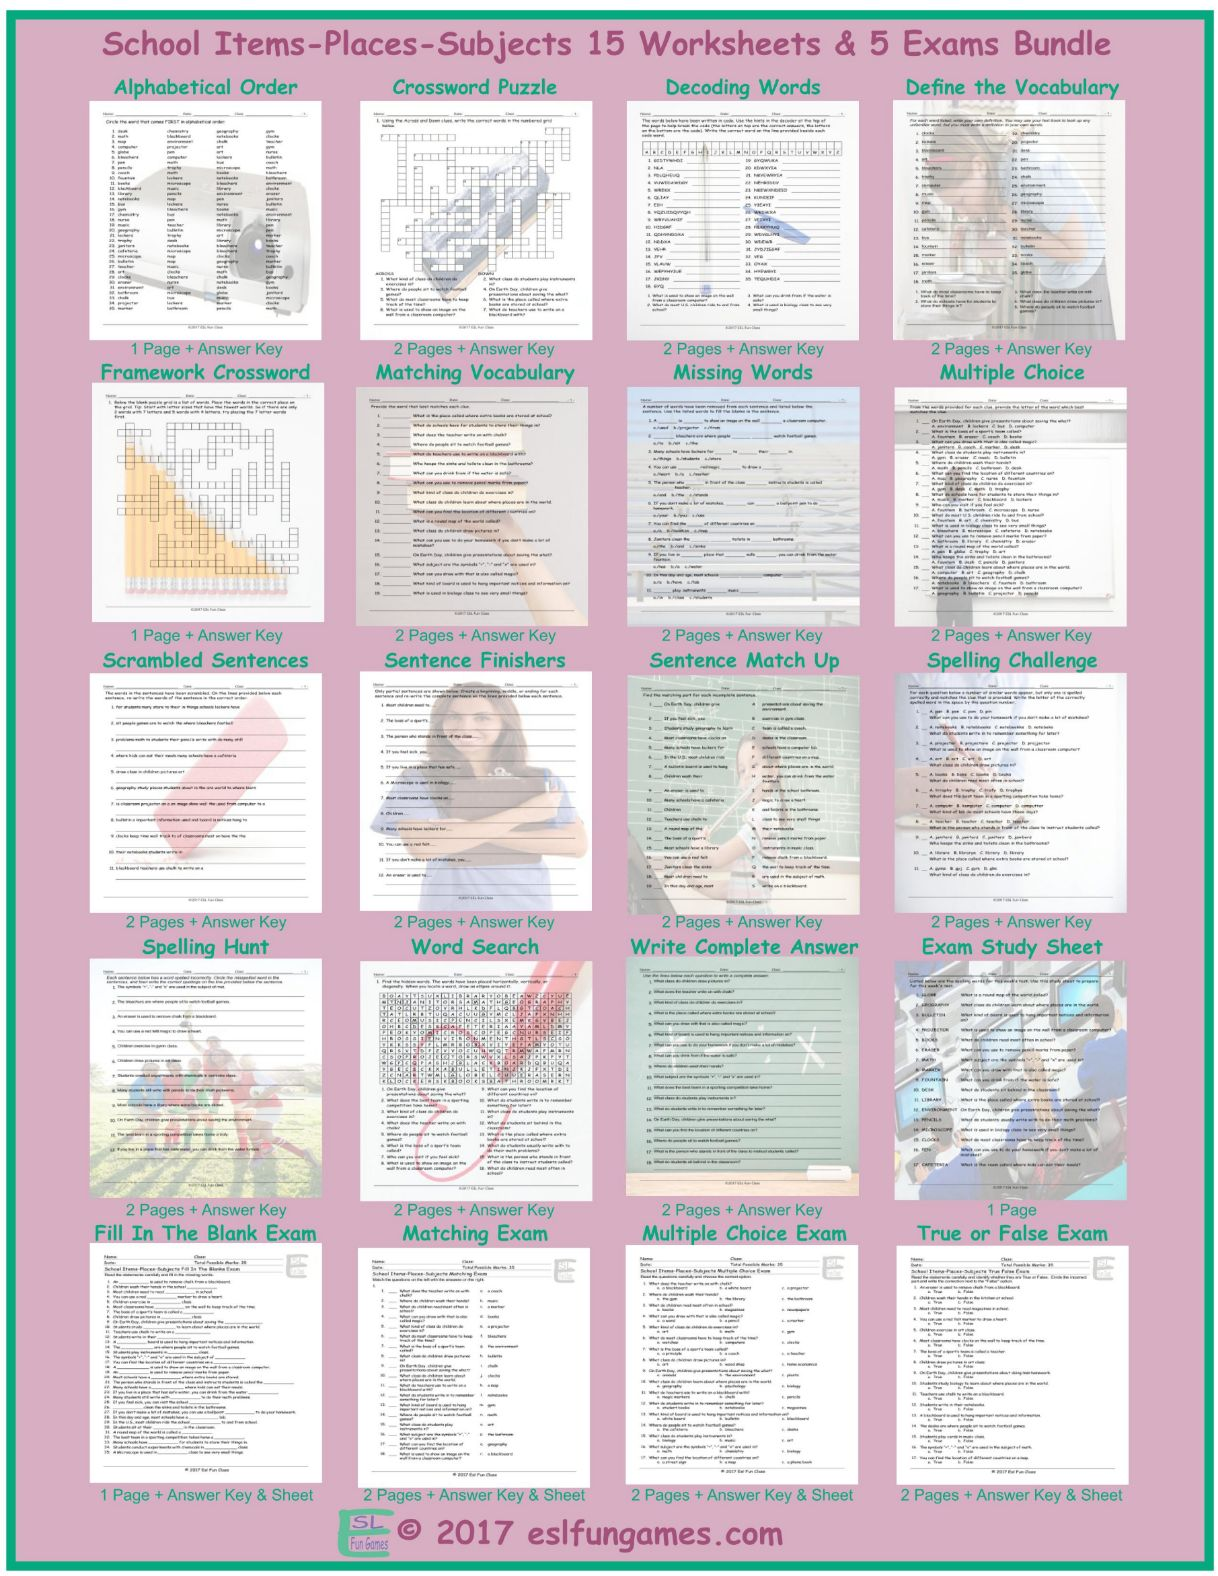 School Items Places Subjects 20 Worksheet And Exam Bundle By Eslfungames